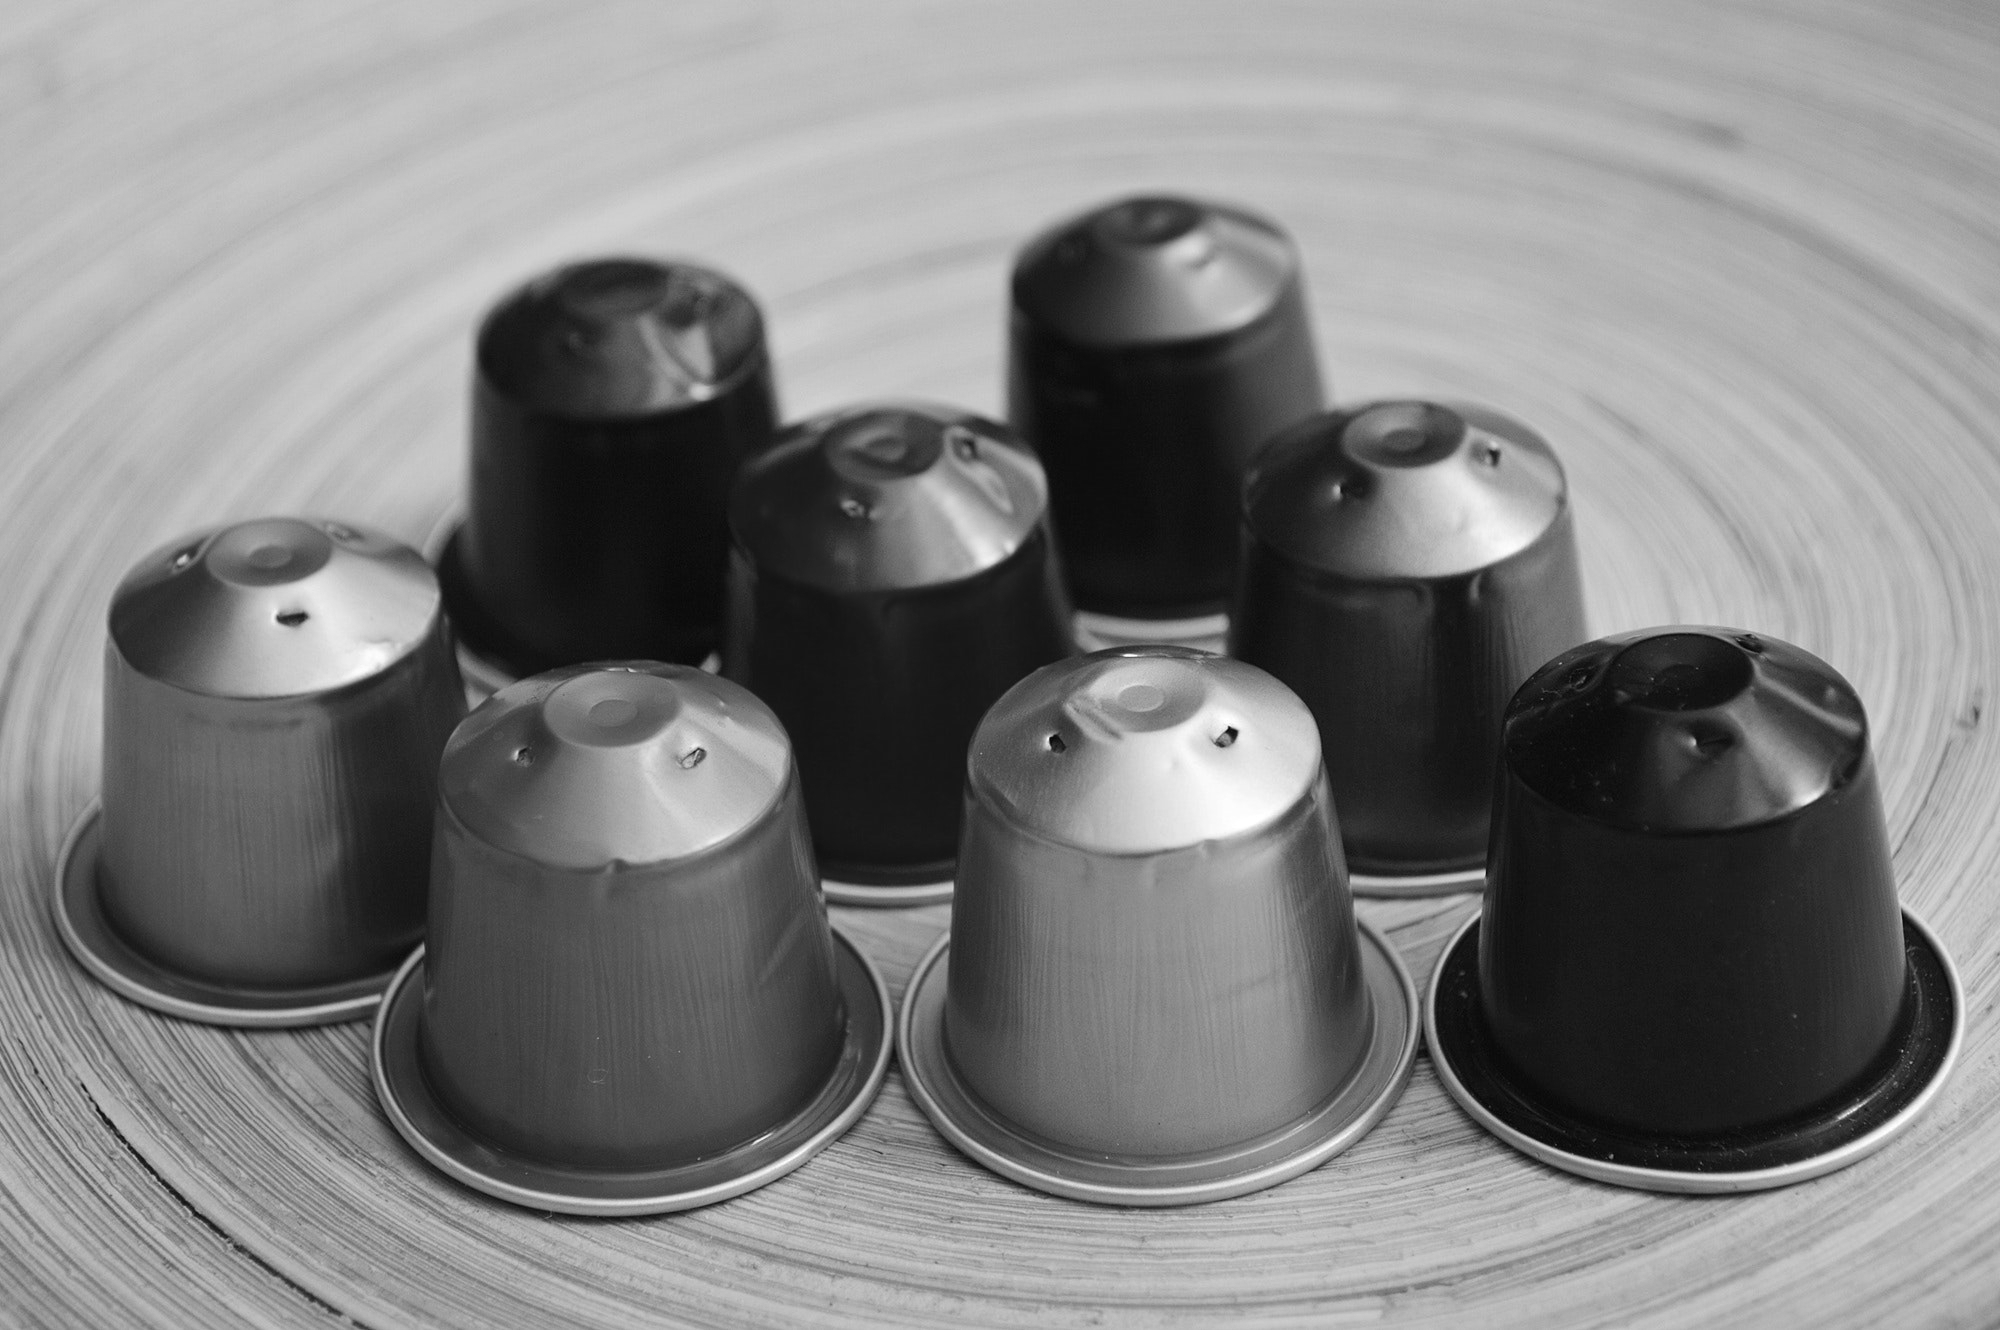 K-cup pods on a table